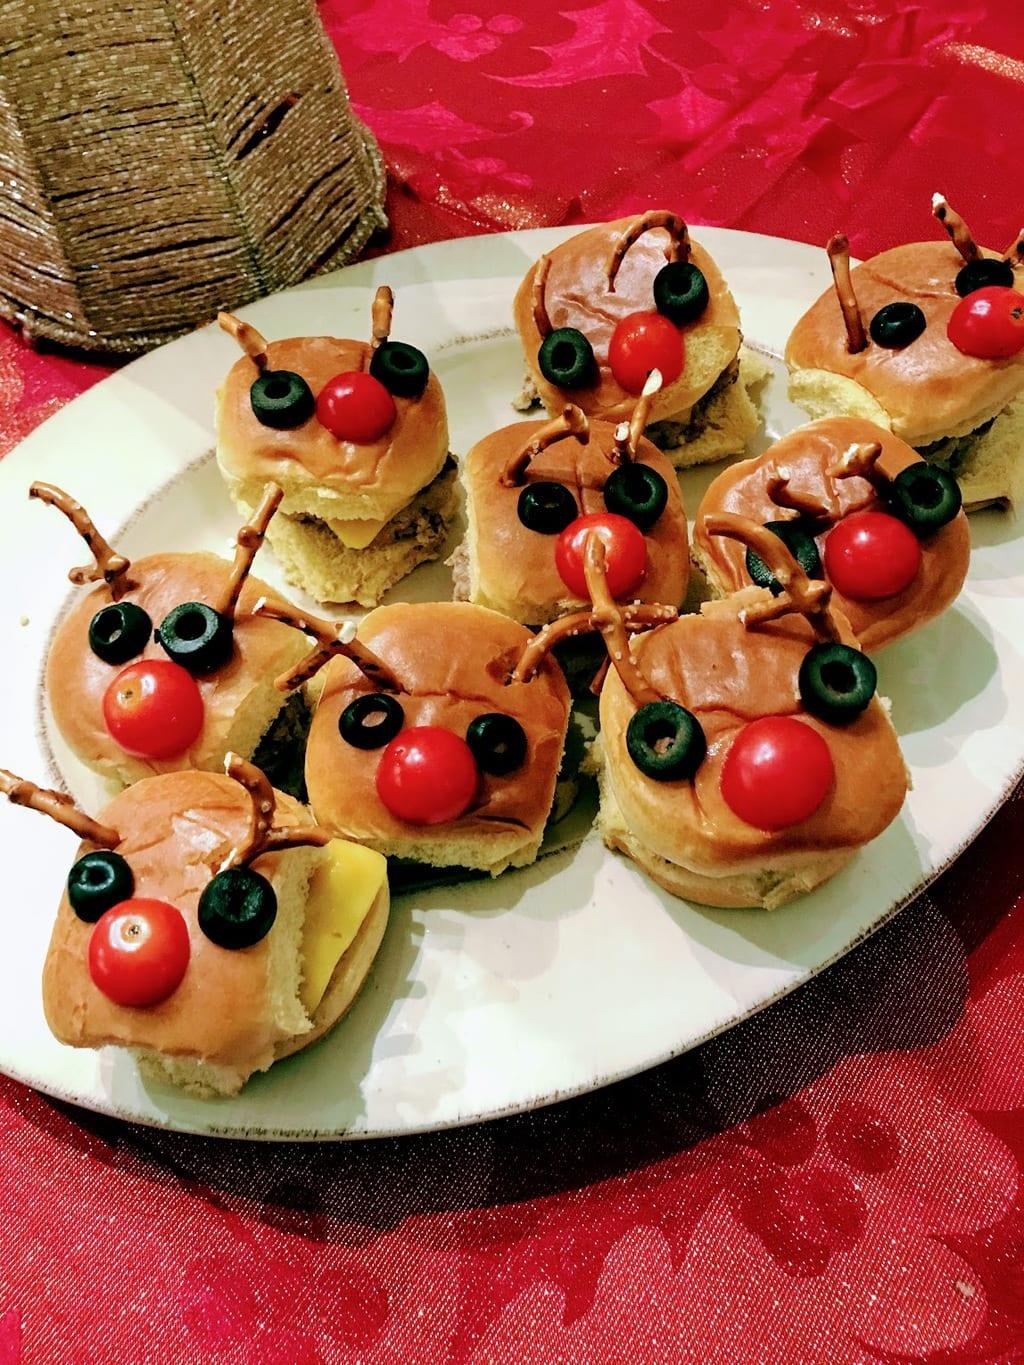 sliders with reindeer faces made from veggies and pretzels on plate